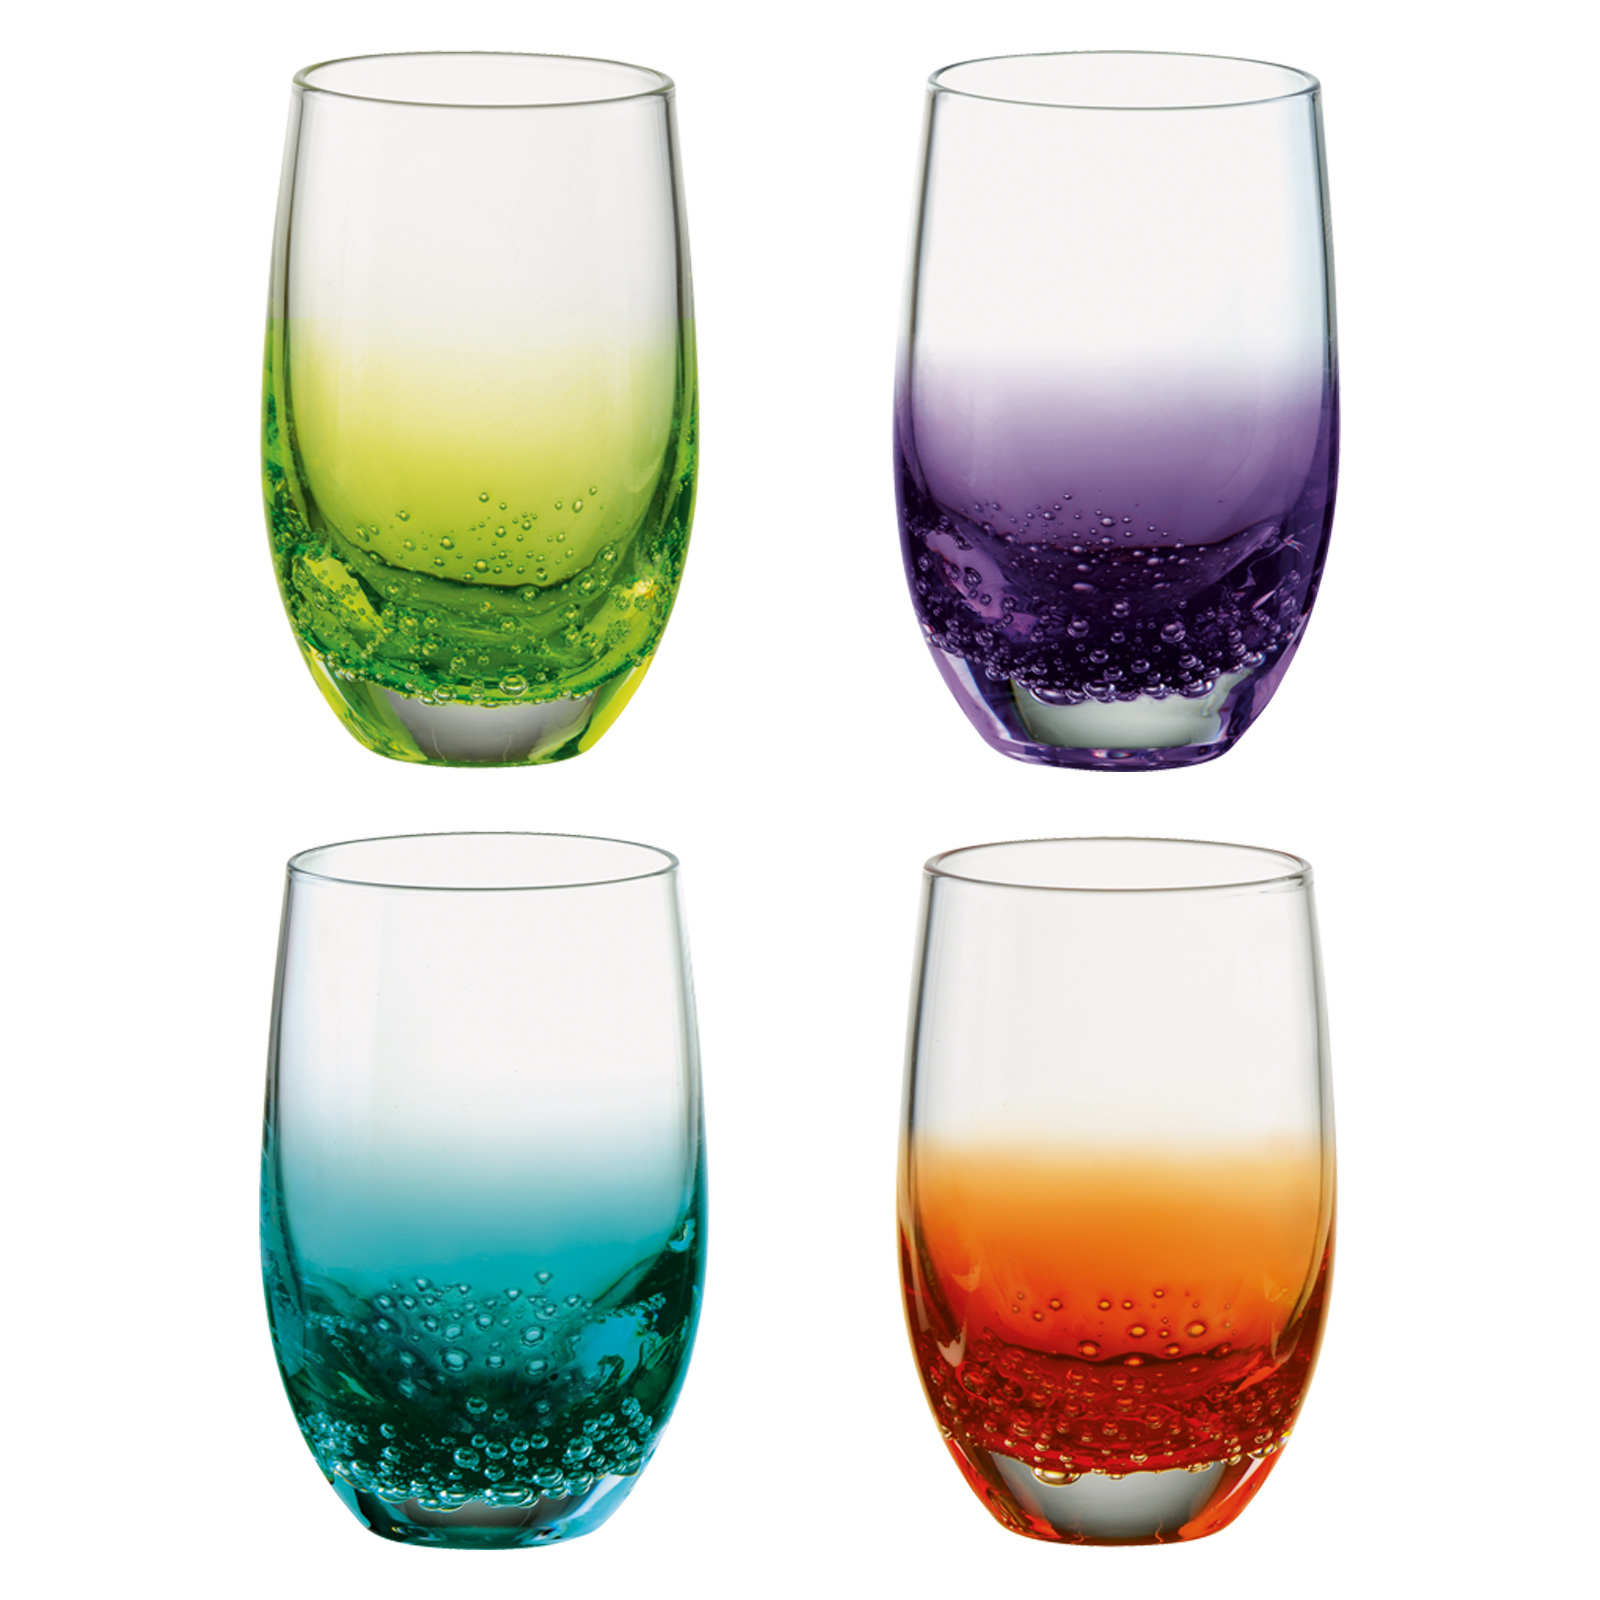 Set of 4 Fizz Shot Glasses by Anton Studio Designs